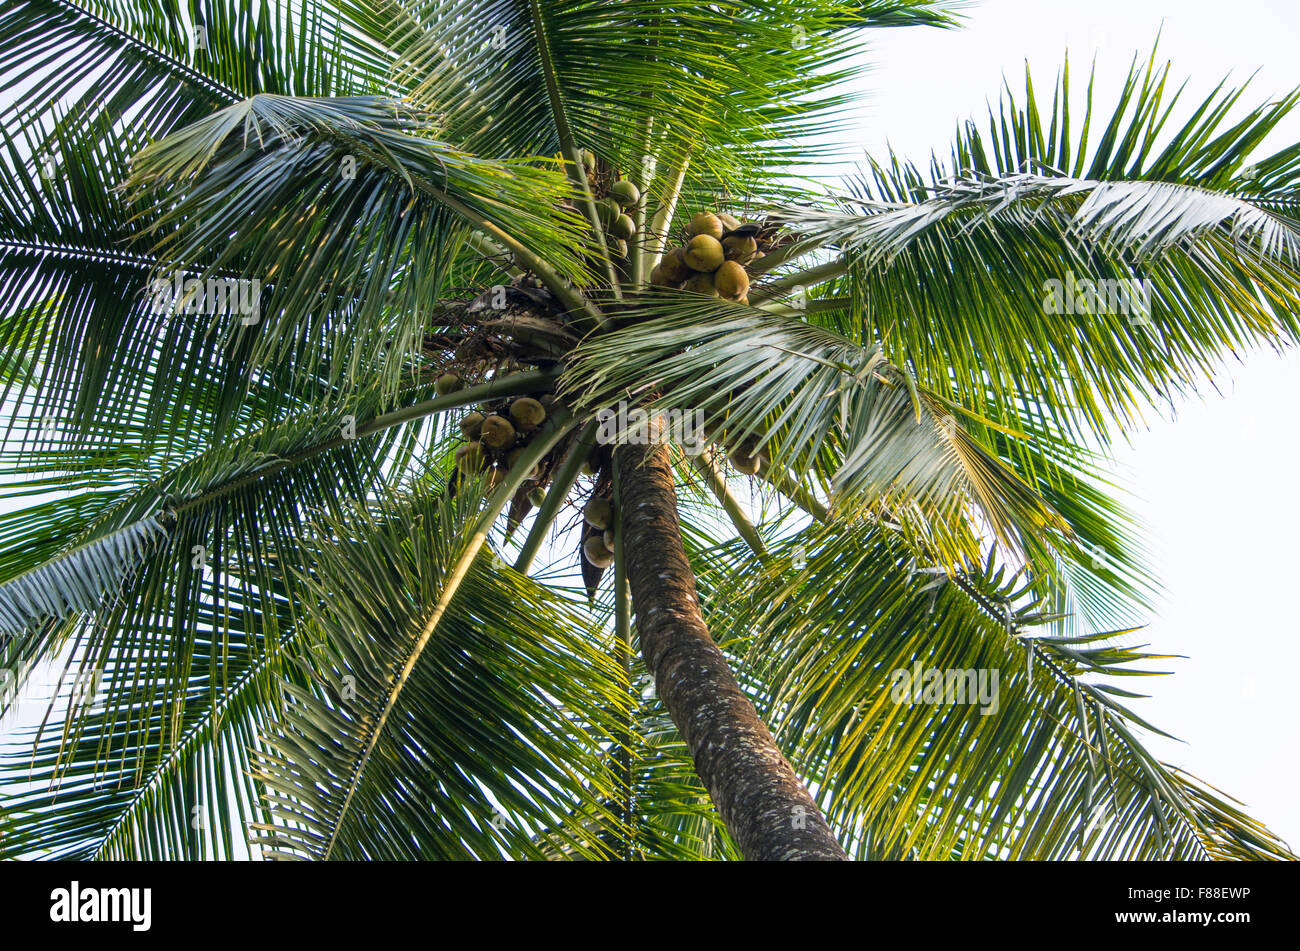 palm trees from below against the blue sky - Stock Image